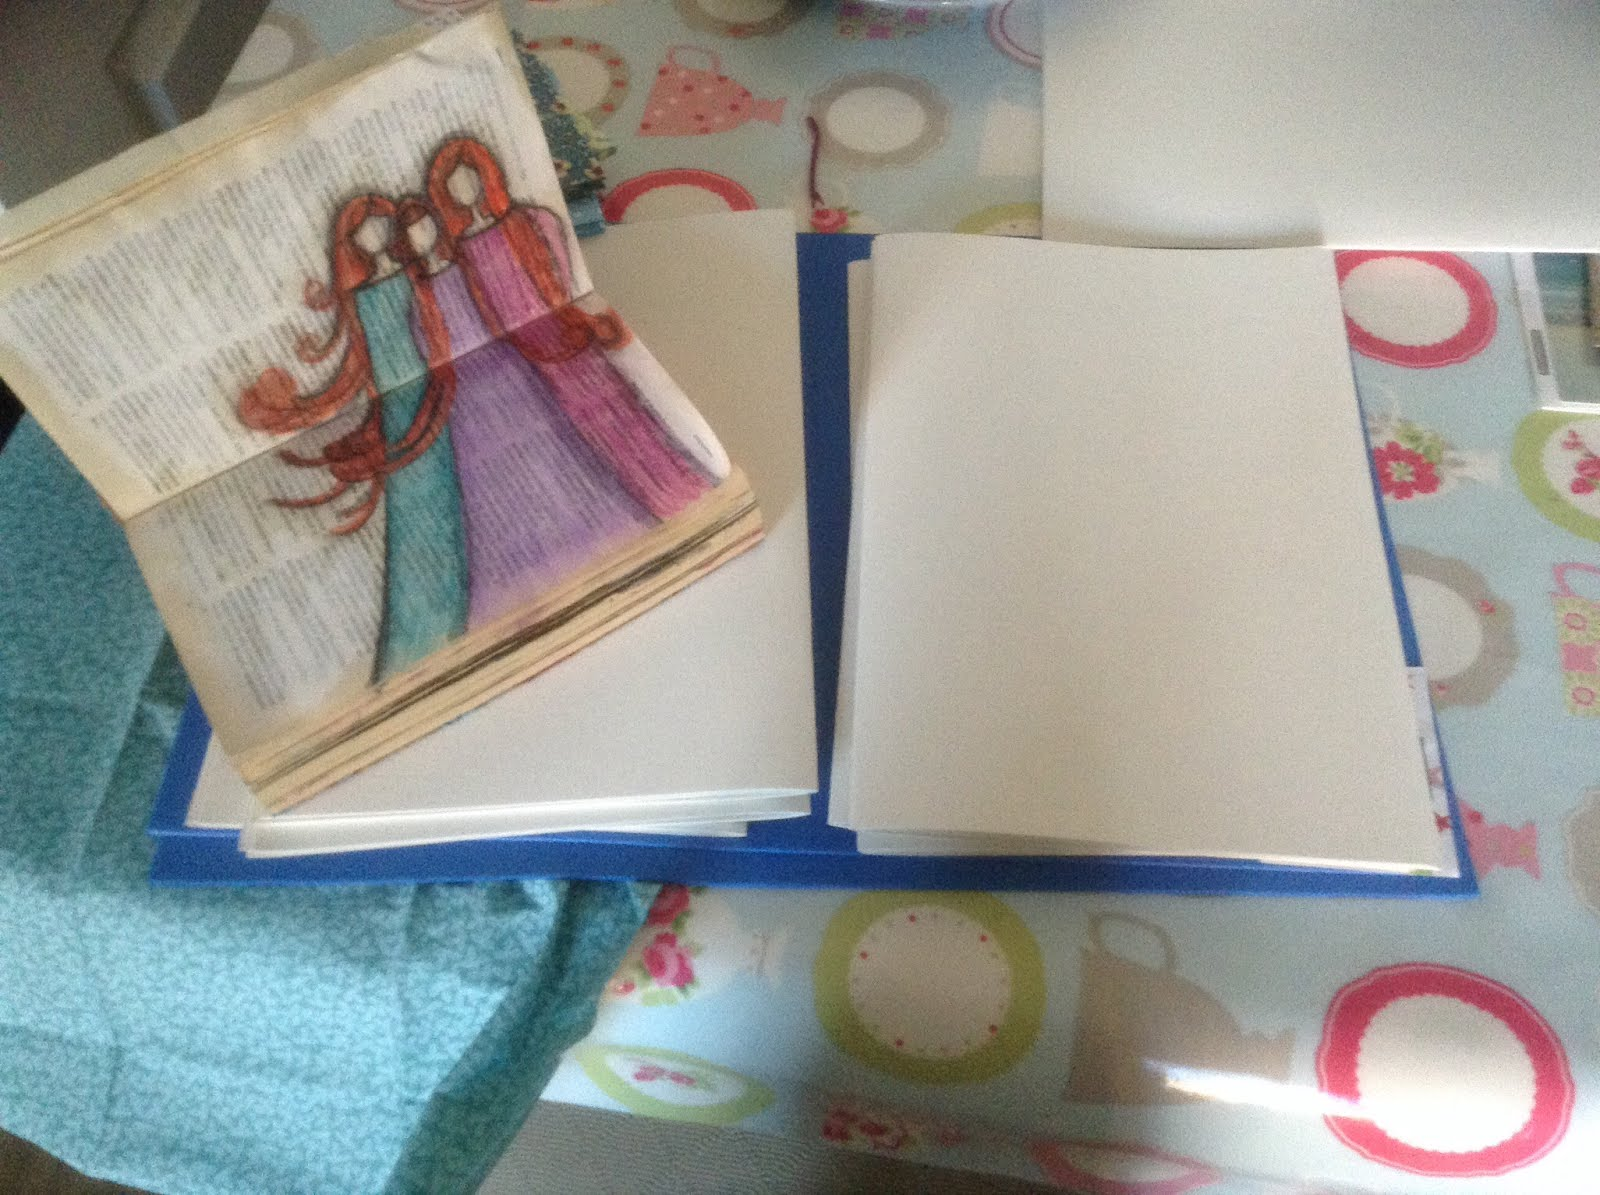 Radiant Art Journals II